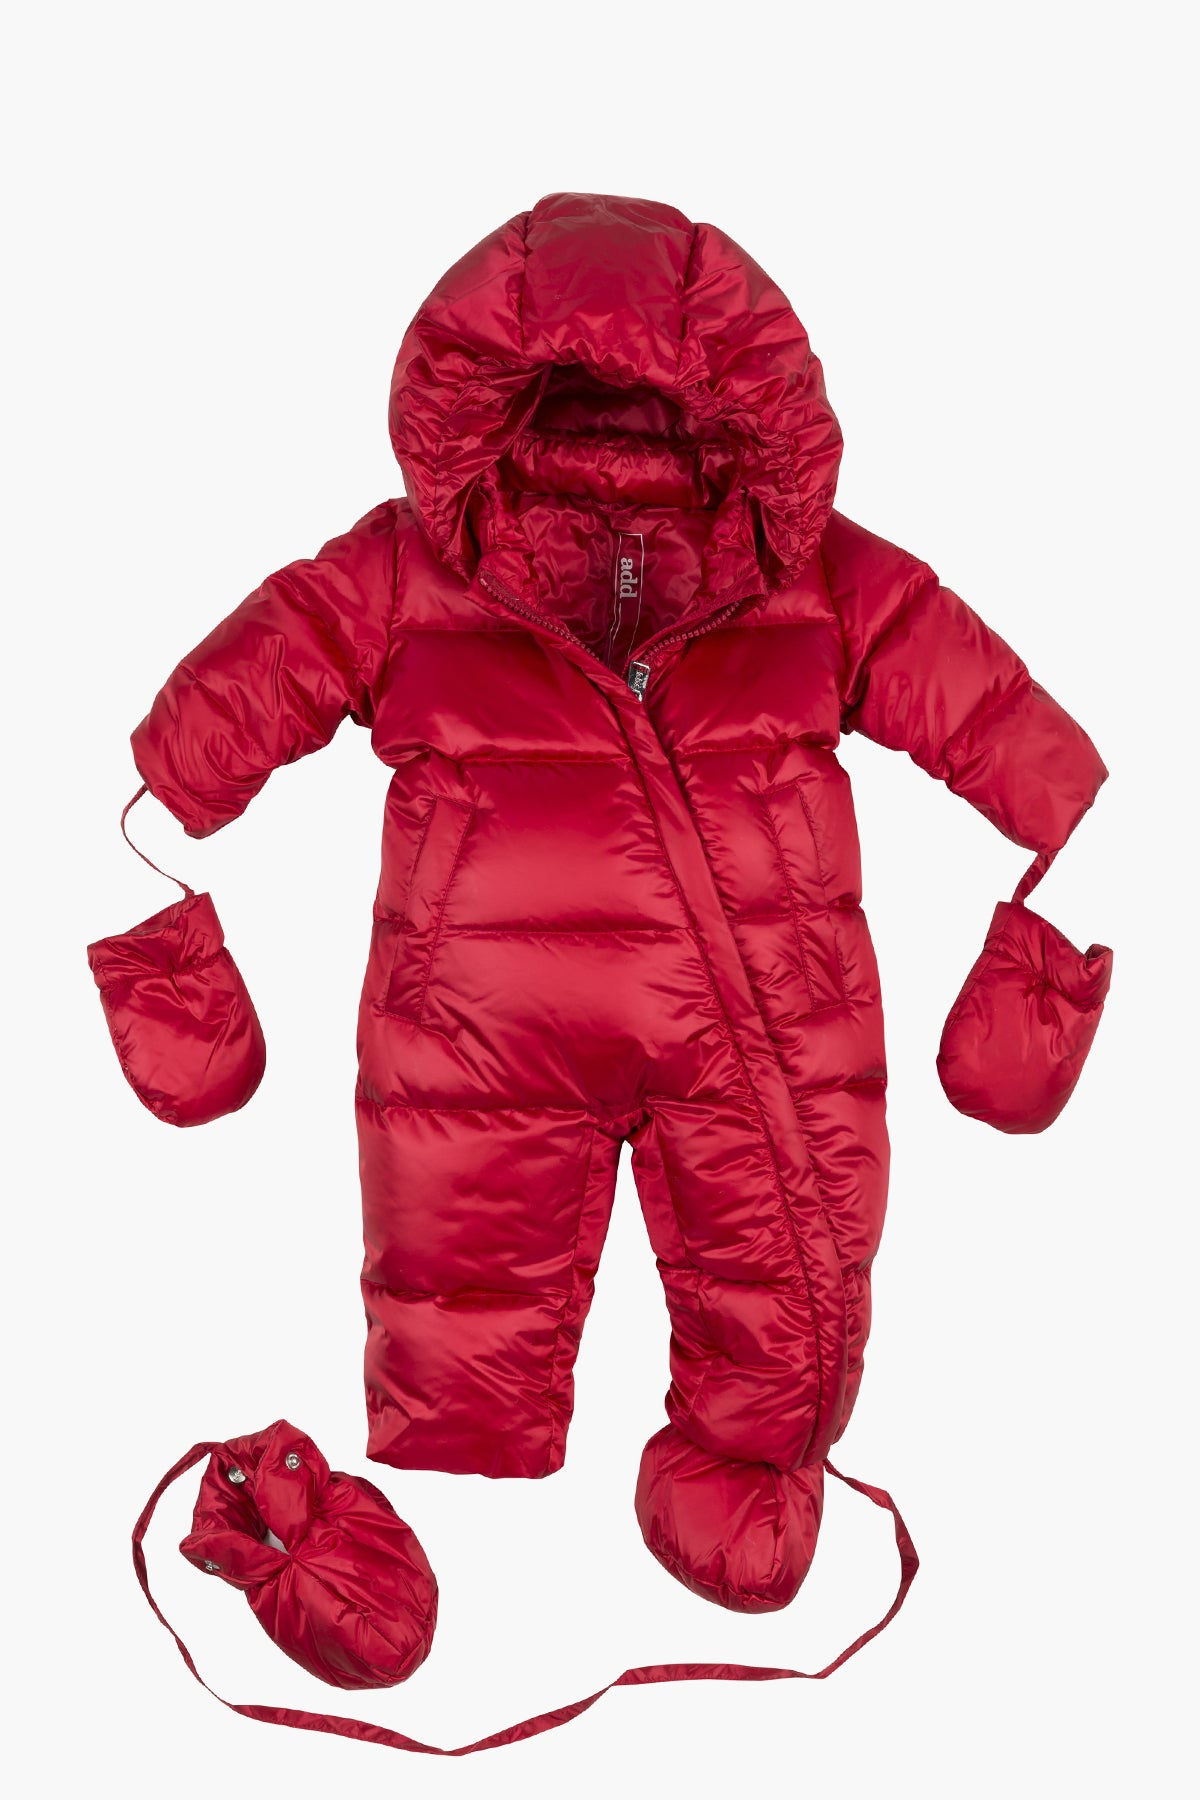 ADD Down Baby Suit - Red